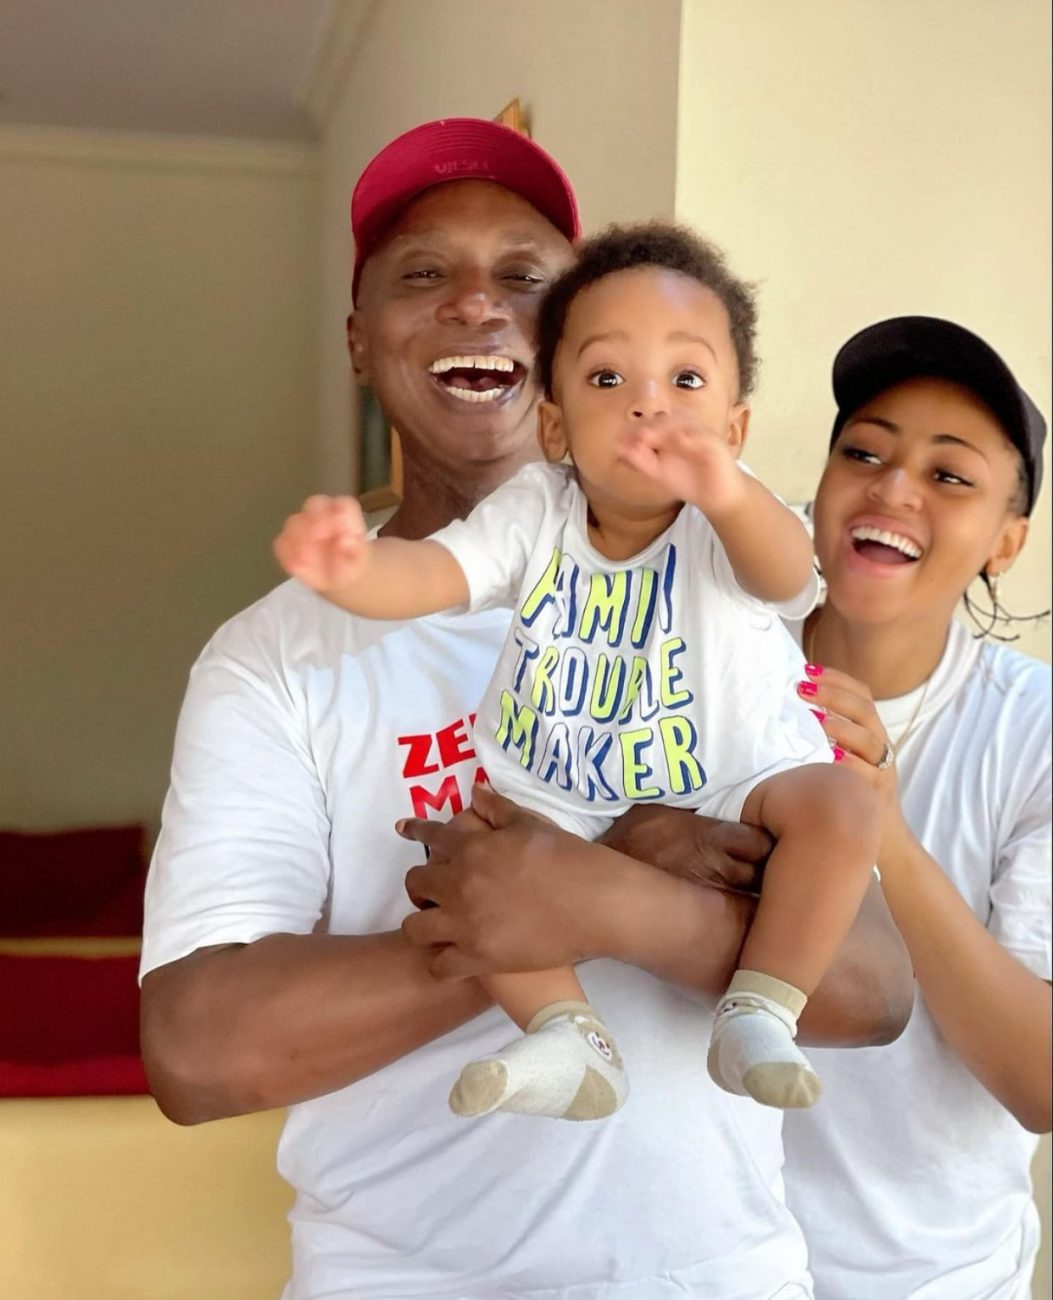 Regina Daniels and Ned Nwoko celebrate their son at 10 months with adorable family photos